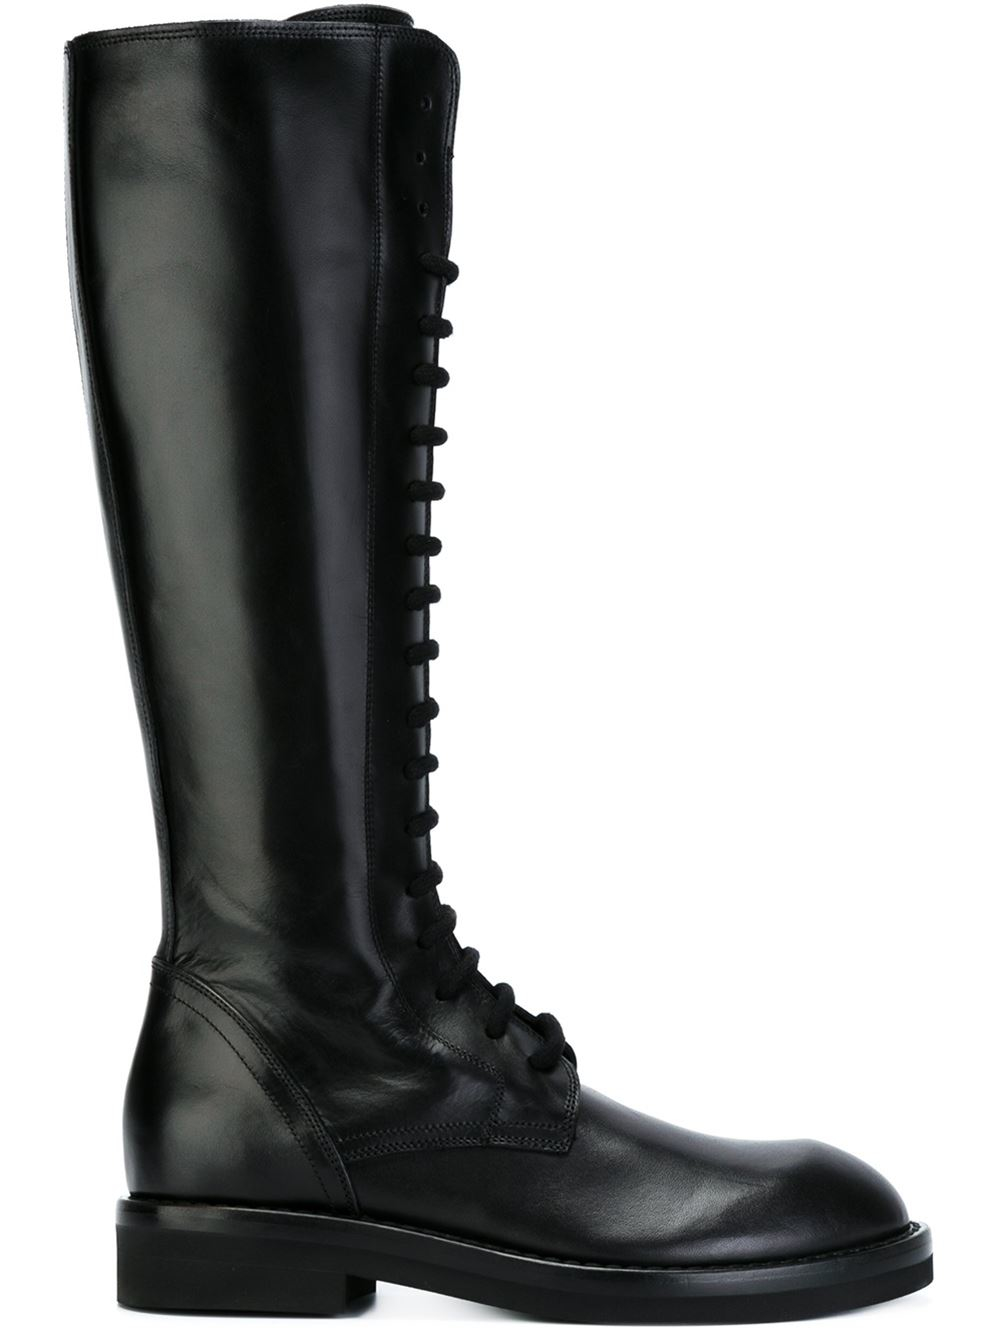 Ann Demeulemeester Black Tall Lace-Up Boots